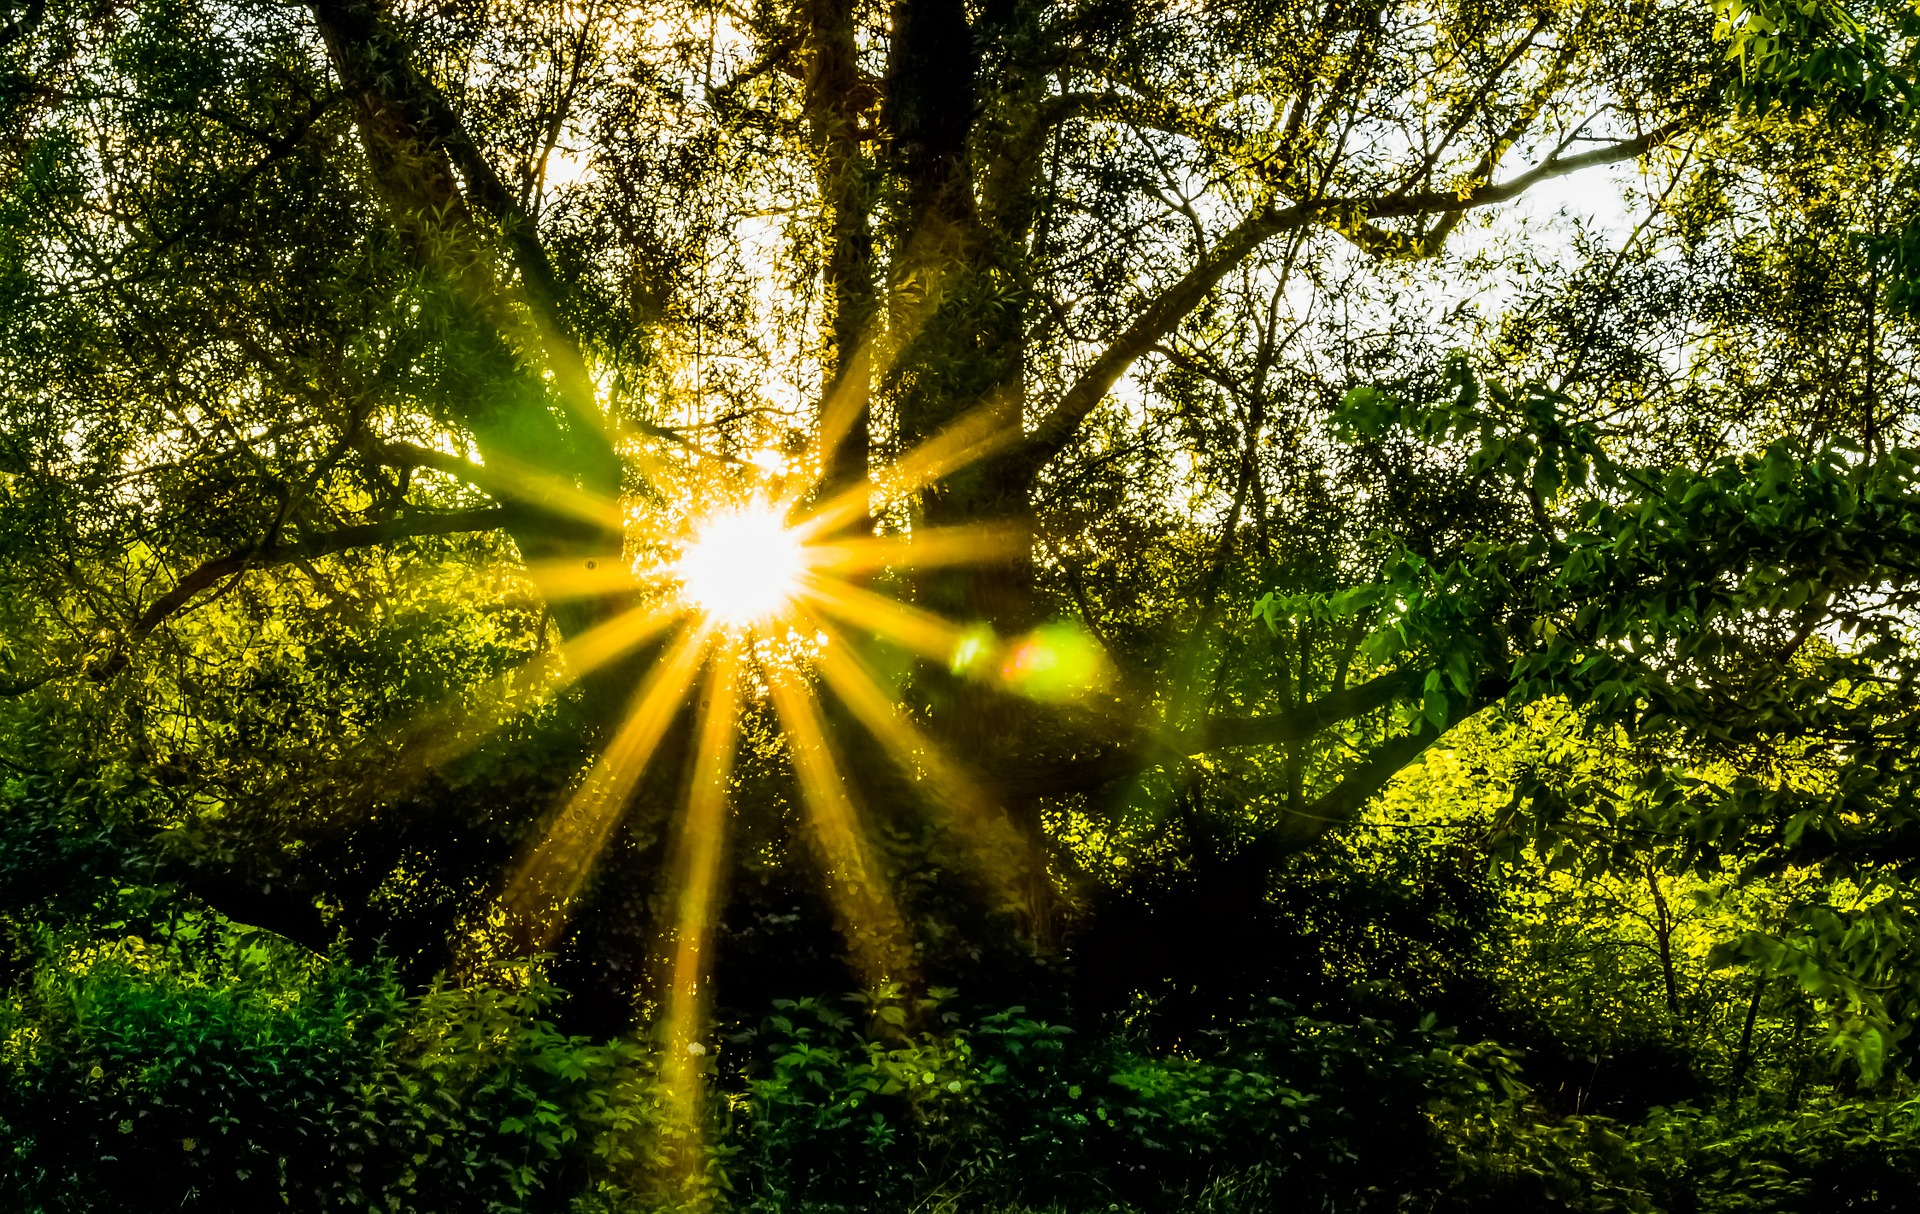 Sunburst moments - What are the moments in each day that makes someone's day? How do you maximise that feeling of optimism to build towards greater success?